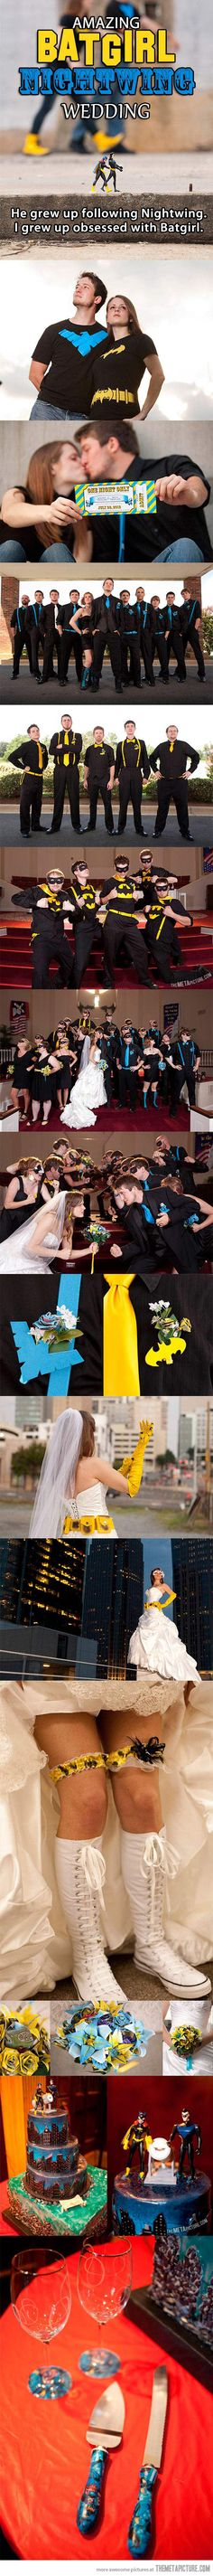 If i ever decided to get married, this will be me with all the batman..